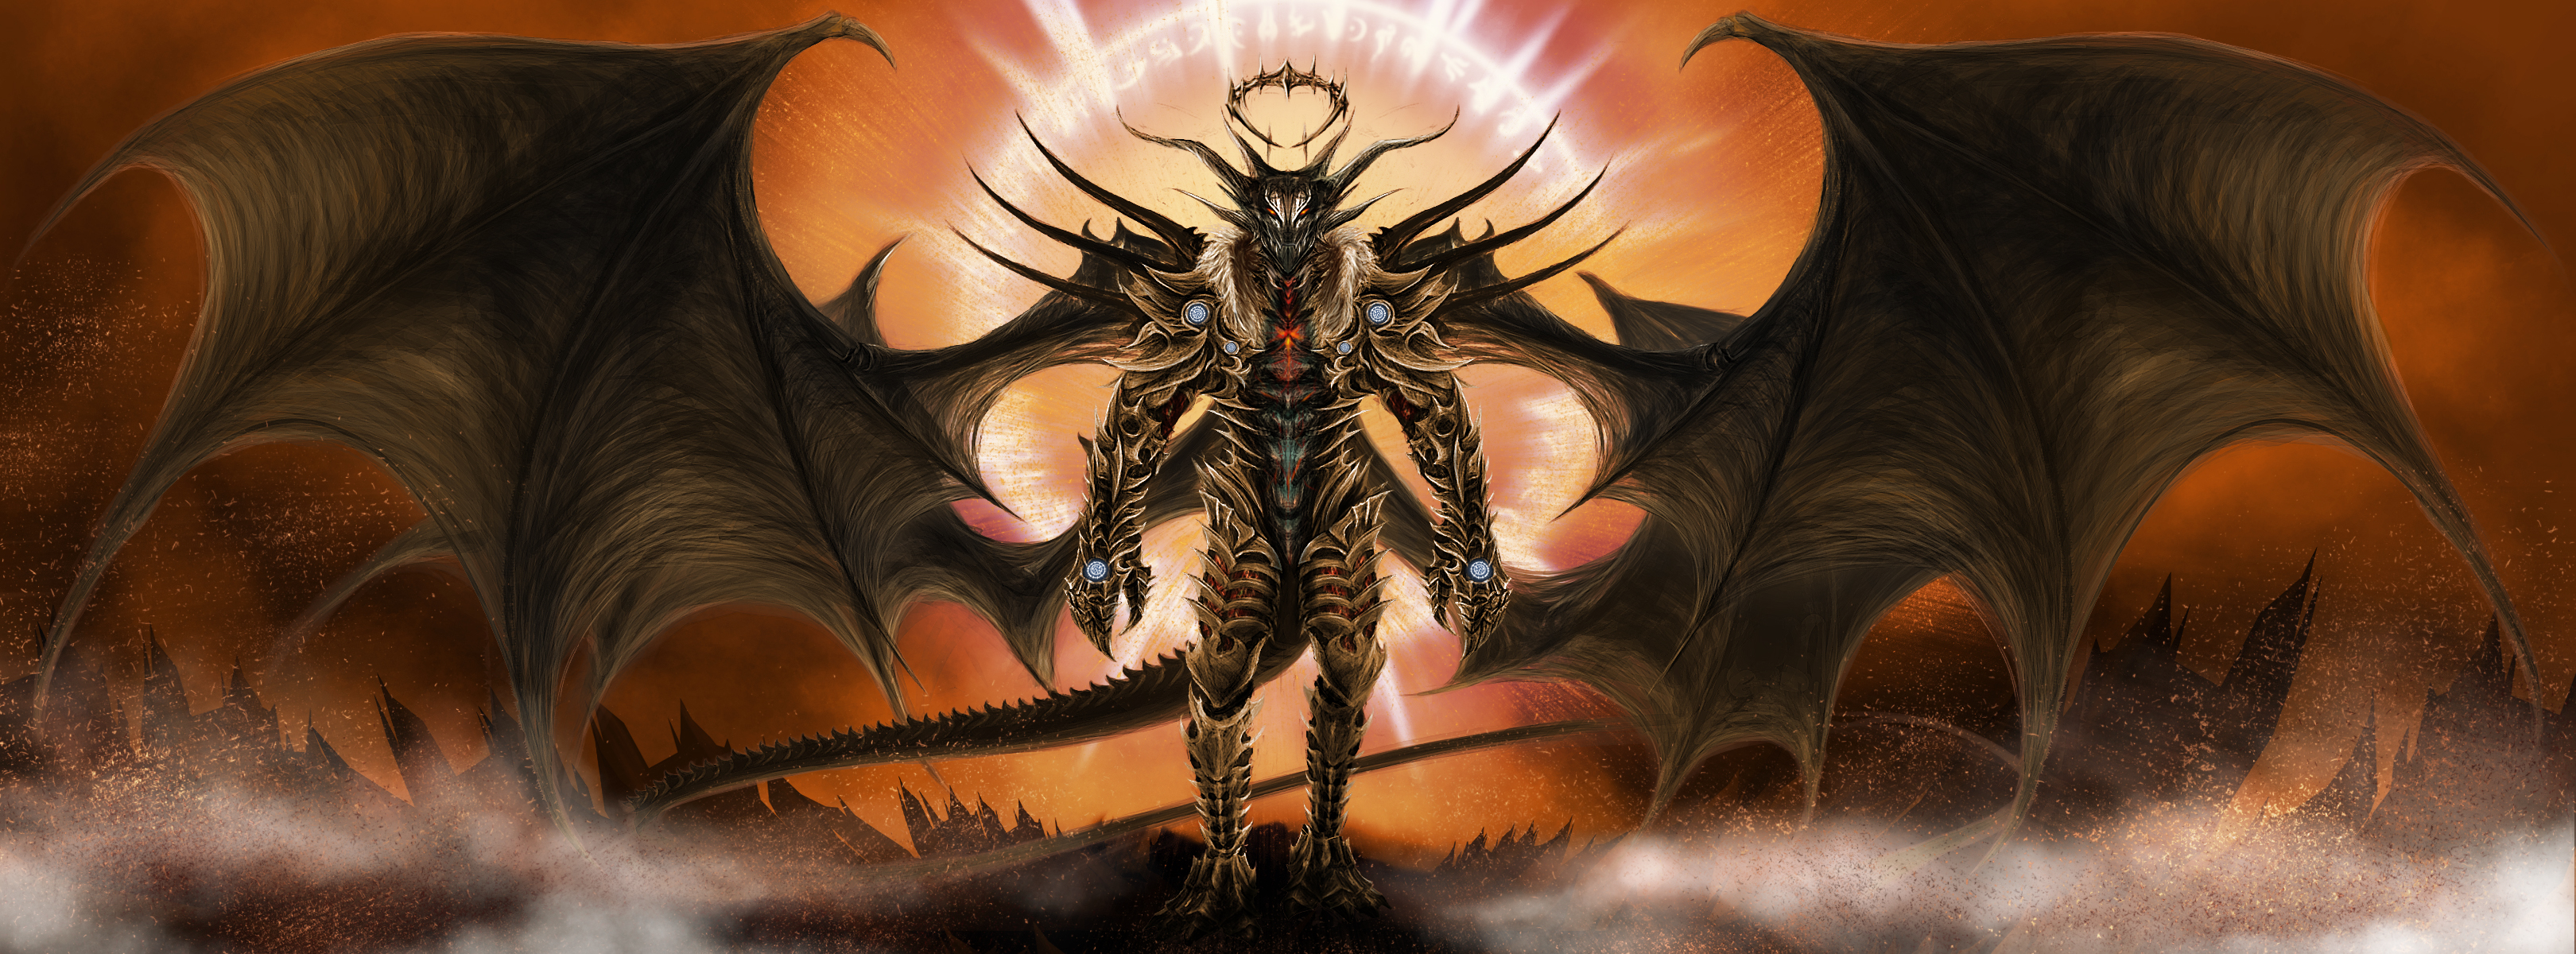 Top Wallpaper Lord Dragon - lord_of_dragon_by_hirooyuuki-d5yj7c2  Photograph_319253.jpg